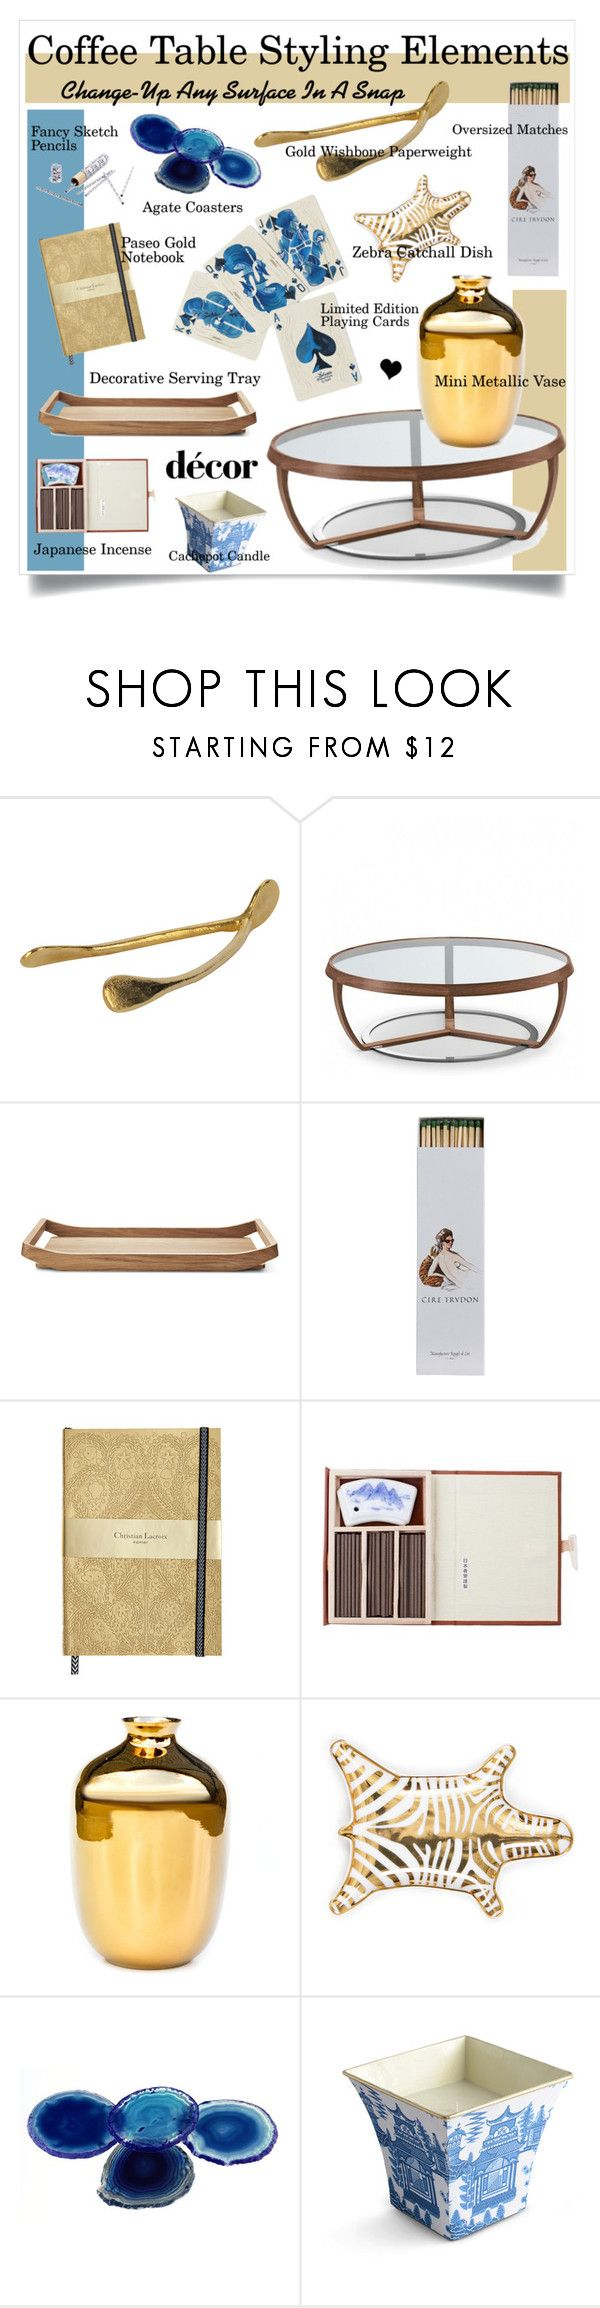 """Coffee Table Styling Elements"" by elske88 ❤ liked on Polyvore featuring interior, interiors, interior design, home, home decor, interior decorating, Bohemia, Jayson Home, Tonon and Georg Jensen"